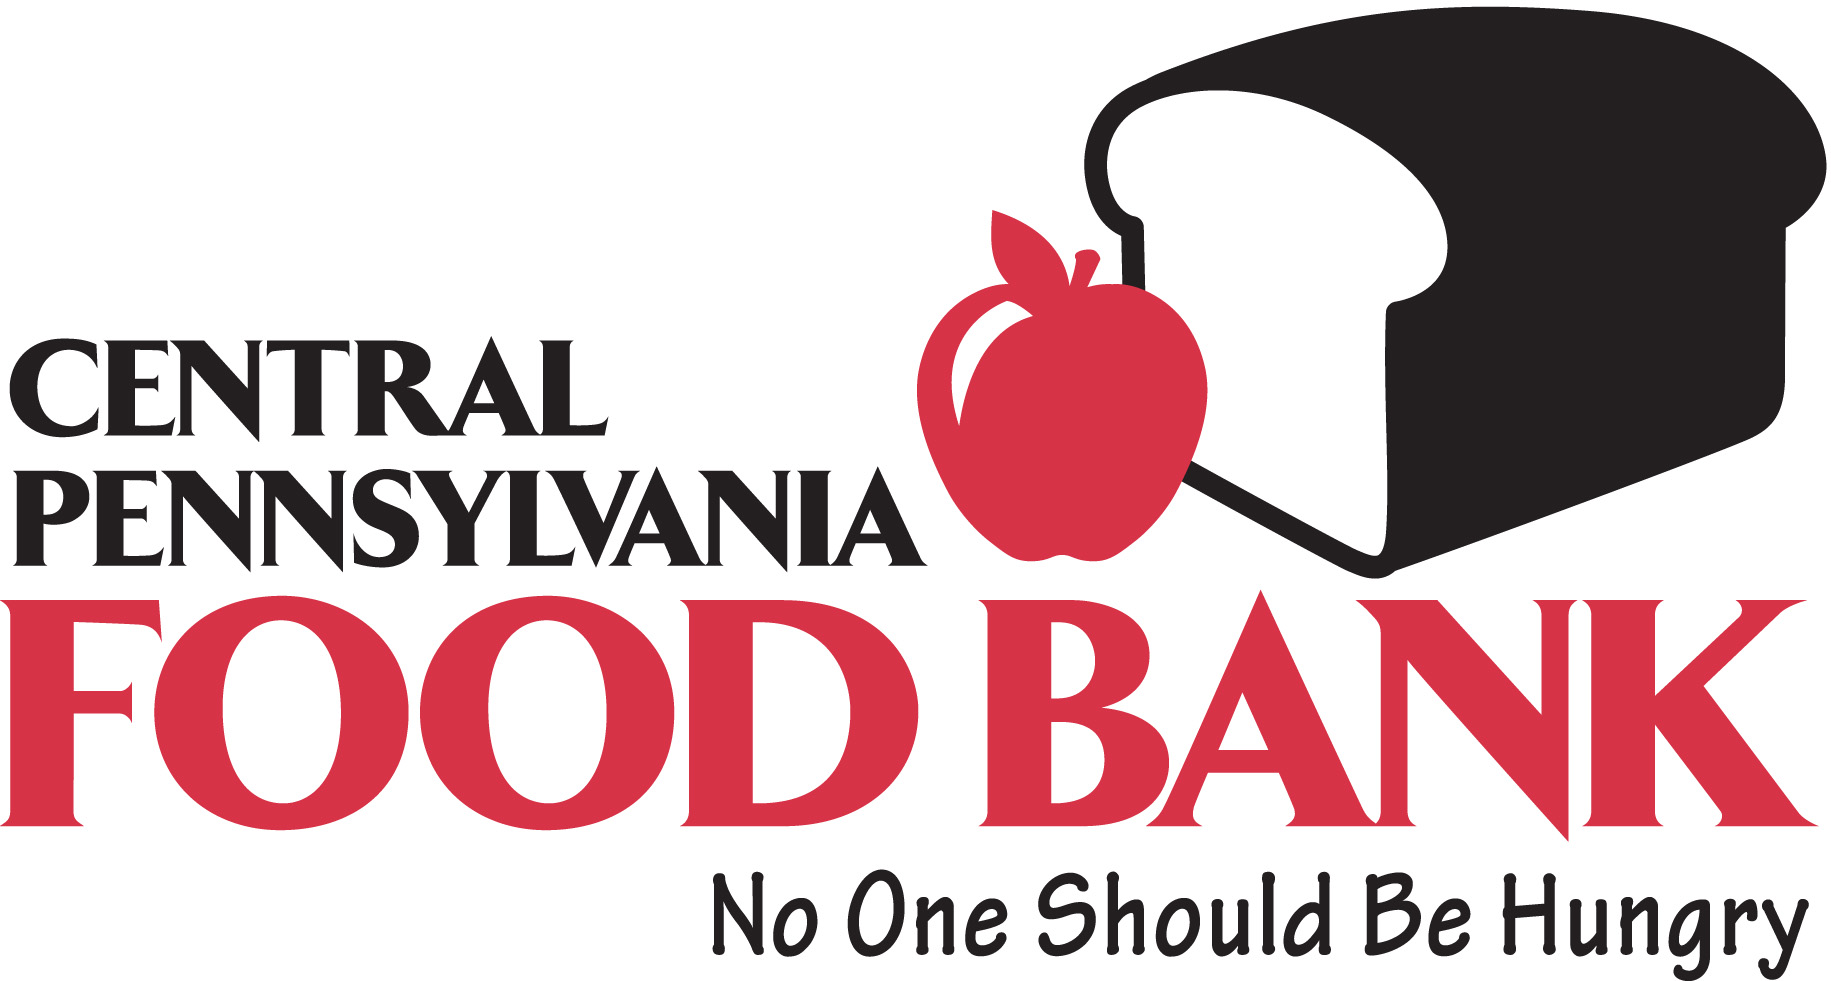 Central Pennsylvania Food Bank: No One Should Be Hungry